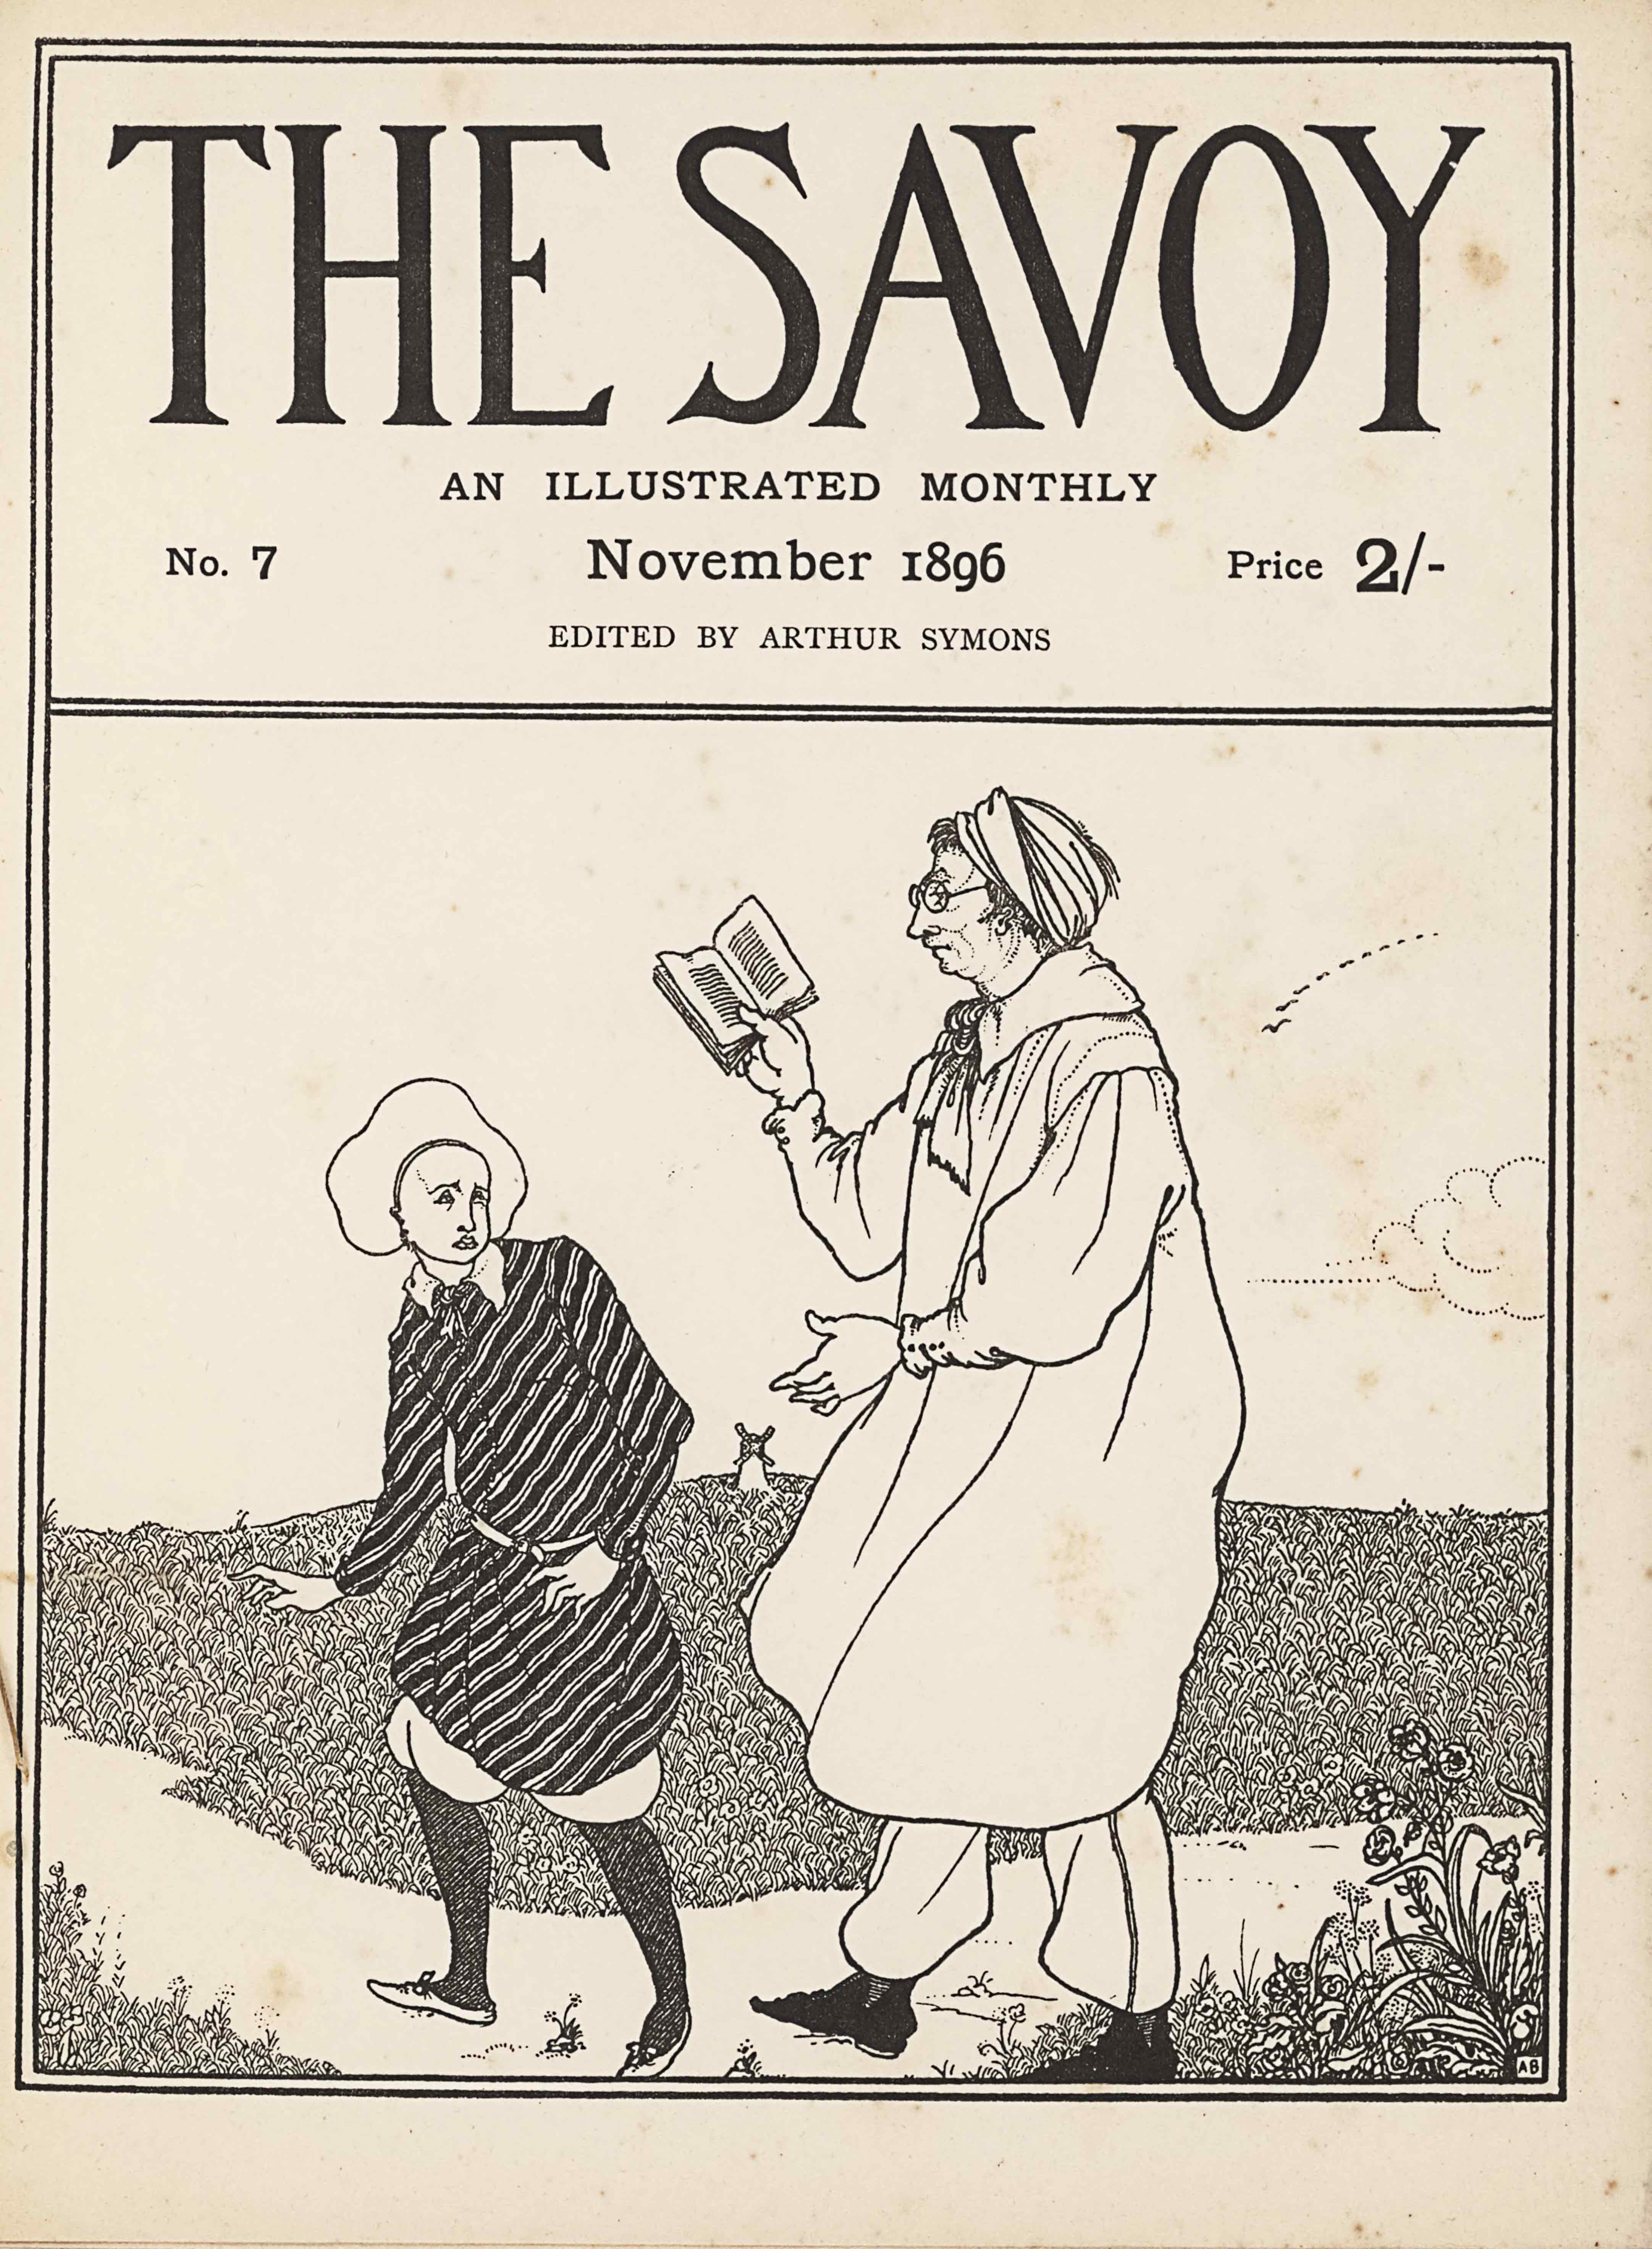 """The double-line framed cover, in portrait orientation, combines a line-block reproduction of a pen-and-ink design with letterpress. Across the top of the page appears the title in display type: """"THE SAVOY"""" [large caps]. Below the title is the centred subtitle in a smaller font that reads: """"AN ILLUSTRATED MONTHLY"""" [caps]. On the subsequent line below, left aligned, is """"No. 7"""". Centred is the date: """"November 1896"""" and right aligned is: """"Price 2/-"""". On the line below and printed in a lighter font reads: """"EDITED BY ARTHUR SYMONS"""" [small caps]. This publishing information takes up the top third of the cover design, within its own bordered section. The illustration below, occupying two-thirds of the cover design, features two central figures on a pathway curving across the foreground with short plants and grasses in front of the path. The figure on the right is a man facing in profile to the left; he is almost the height of the illustration section of the cover. He stands midstep with his left elbow at his side and his left hand stretched out before him. His right hand is raised to eye-level and in it, he holds an open book. He is wearing a wrap or turban around his head with his hair sticking out the front and back. He is wearing round glasses and has an ascot tied about his neck. His white smock extends just beyond his knees. His white pants are tucked into his back shoes. To his left on the path is a smaller, Pierrot figure, turning back to look up at the first man. Pierrot stands at shoulder height to the first figure. Pierrot has a downturned mouth and downturned eyes. He is wearing a striped tunic that extends to his knees with a thin white belt tied around his waist. The bottoms of his breeches are tucked into knee-length black socks and he has white shoes. Stretching out past the pathway, in the background, is a field that rises to a horizon a third of the way up the page. At the horizon's edge, centred in the middle ground, stands a four-bladed windmill. The sky """